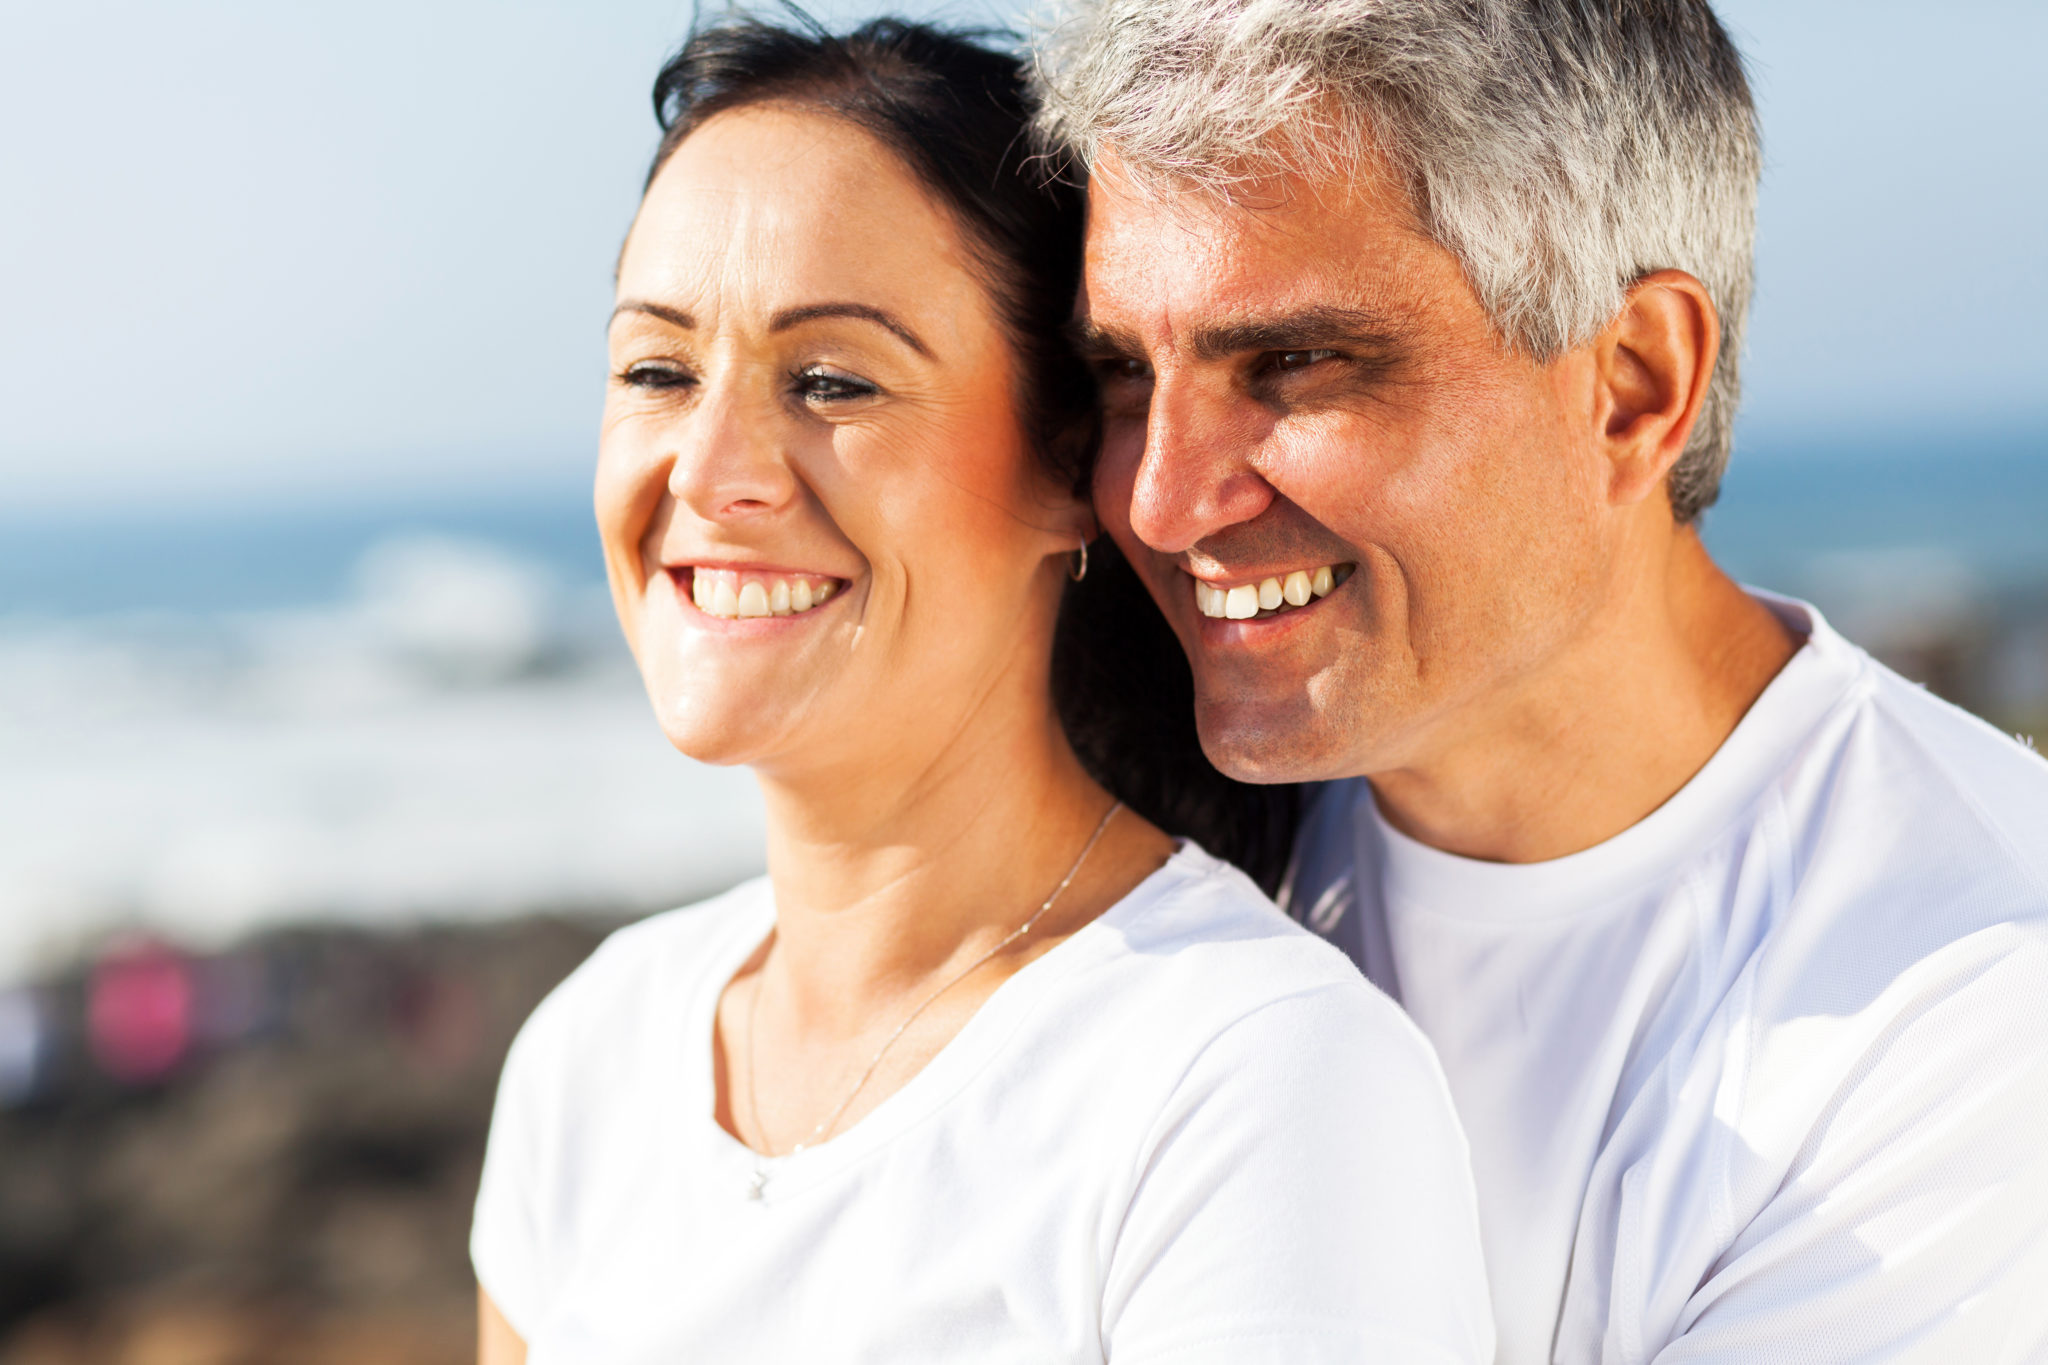 hormone replacement therapy: older man and woman smiling with vigor